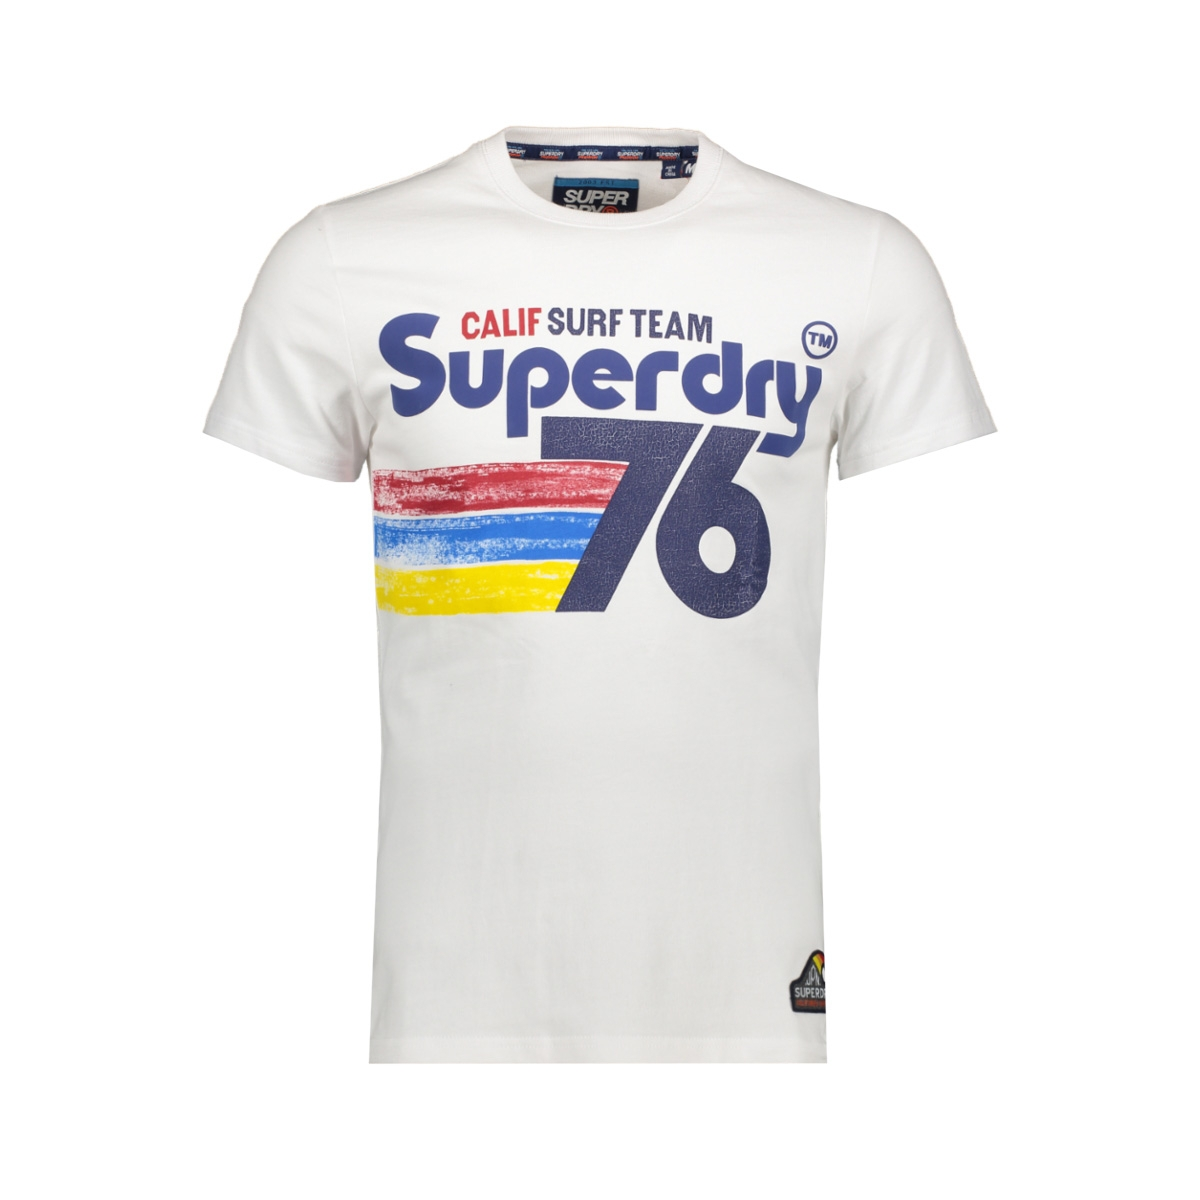 76 surf tee m10100iu superdry t-shirt optic